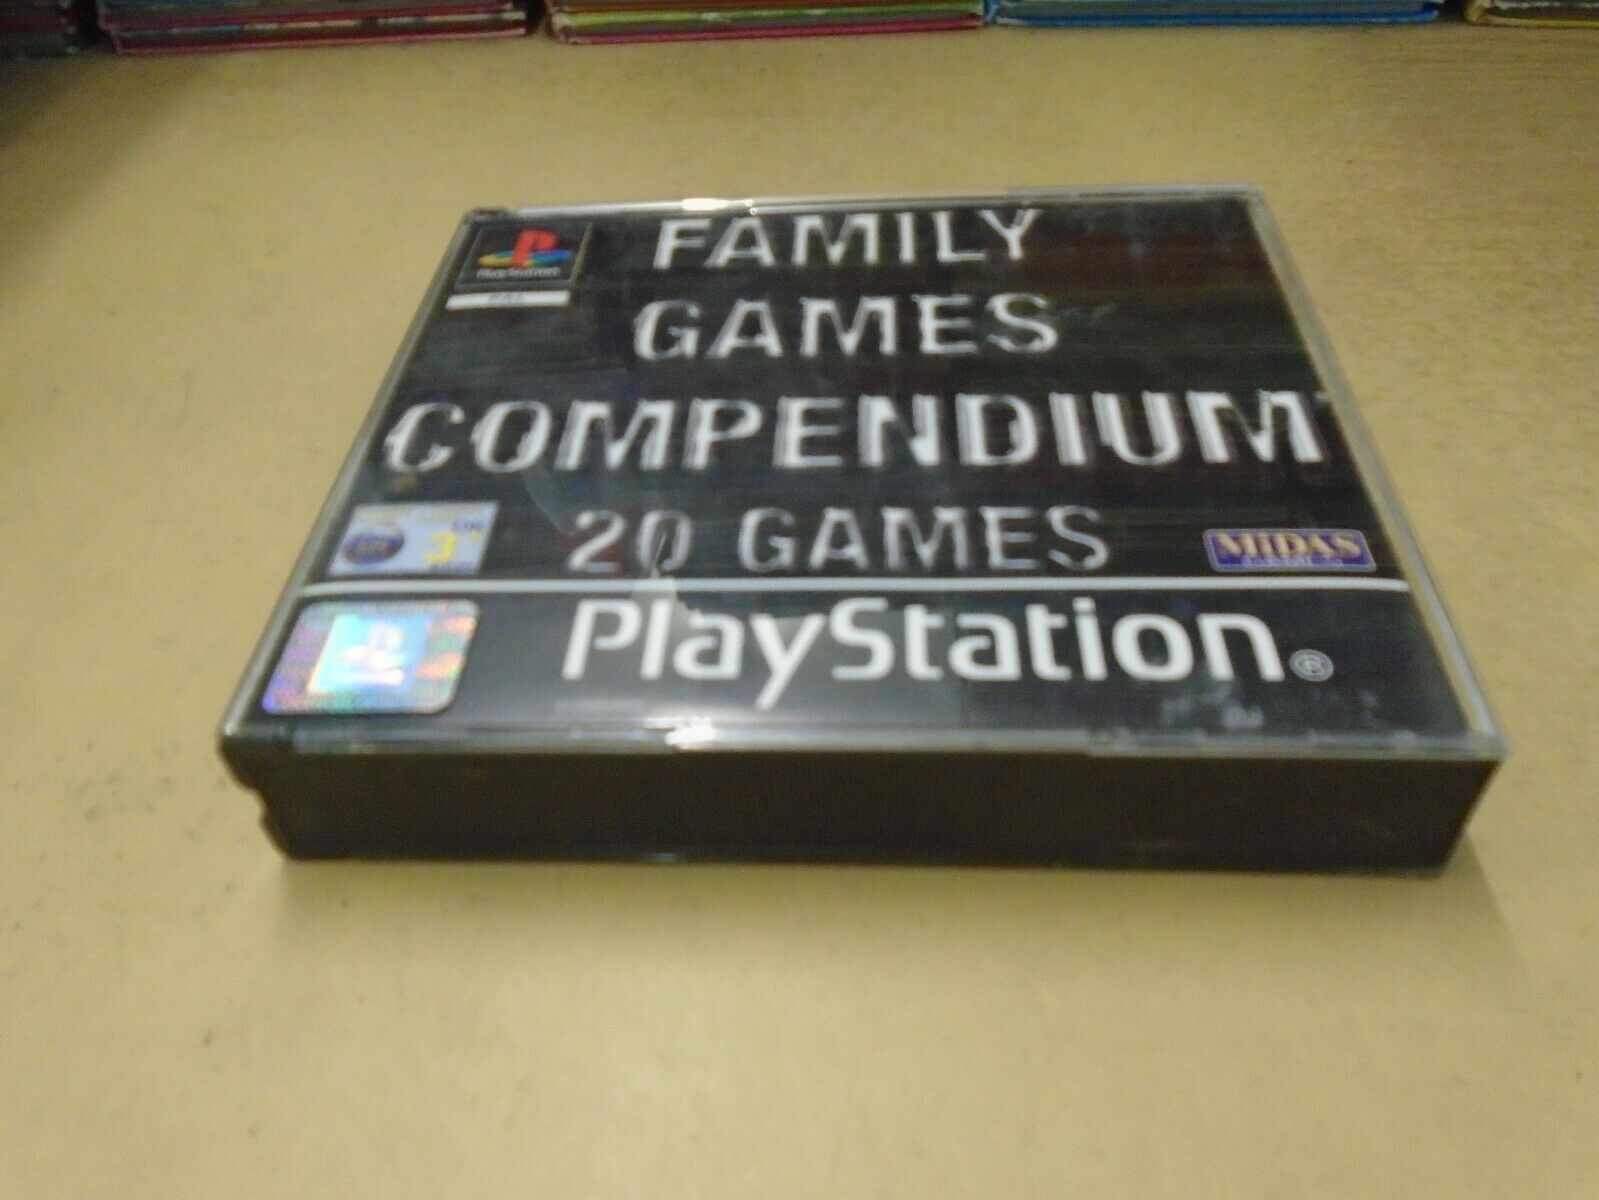 PS1 PLAYSTATION 1 PSone Family Games Compendium 20 GAMES ON 3 CD's FAT BOX